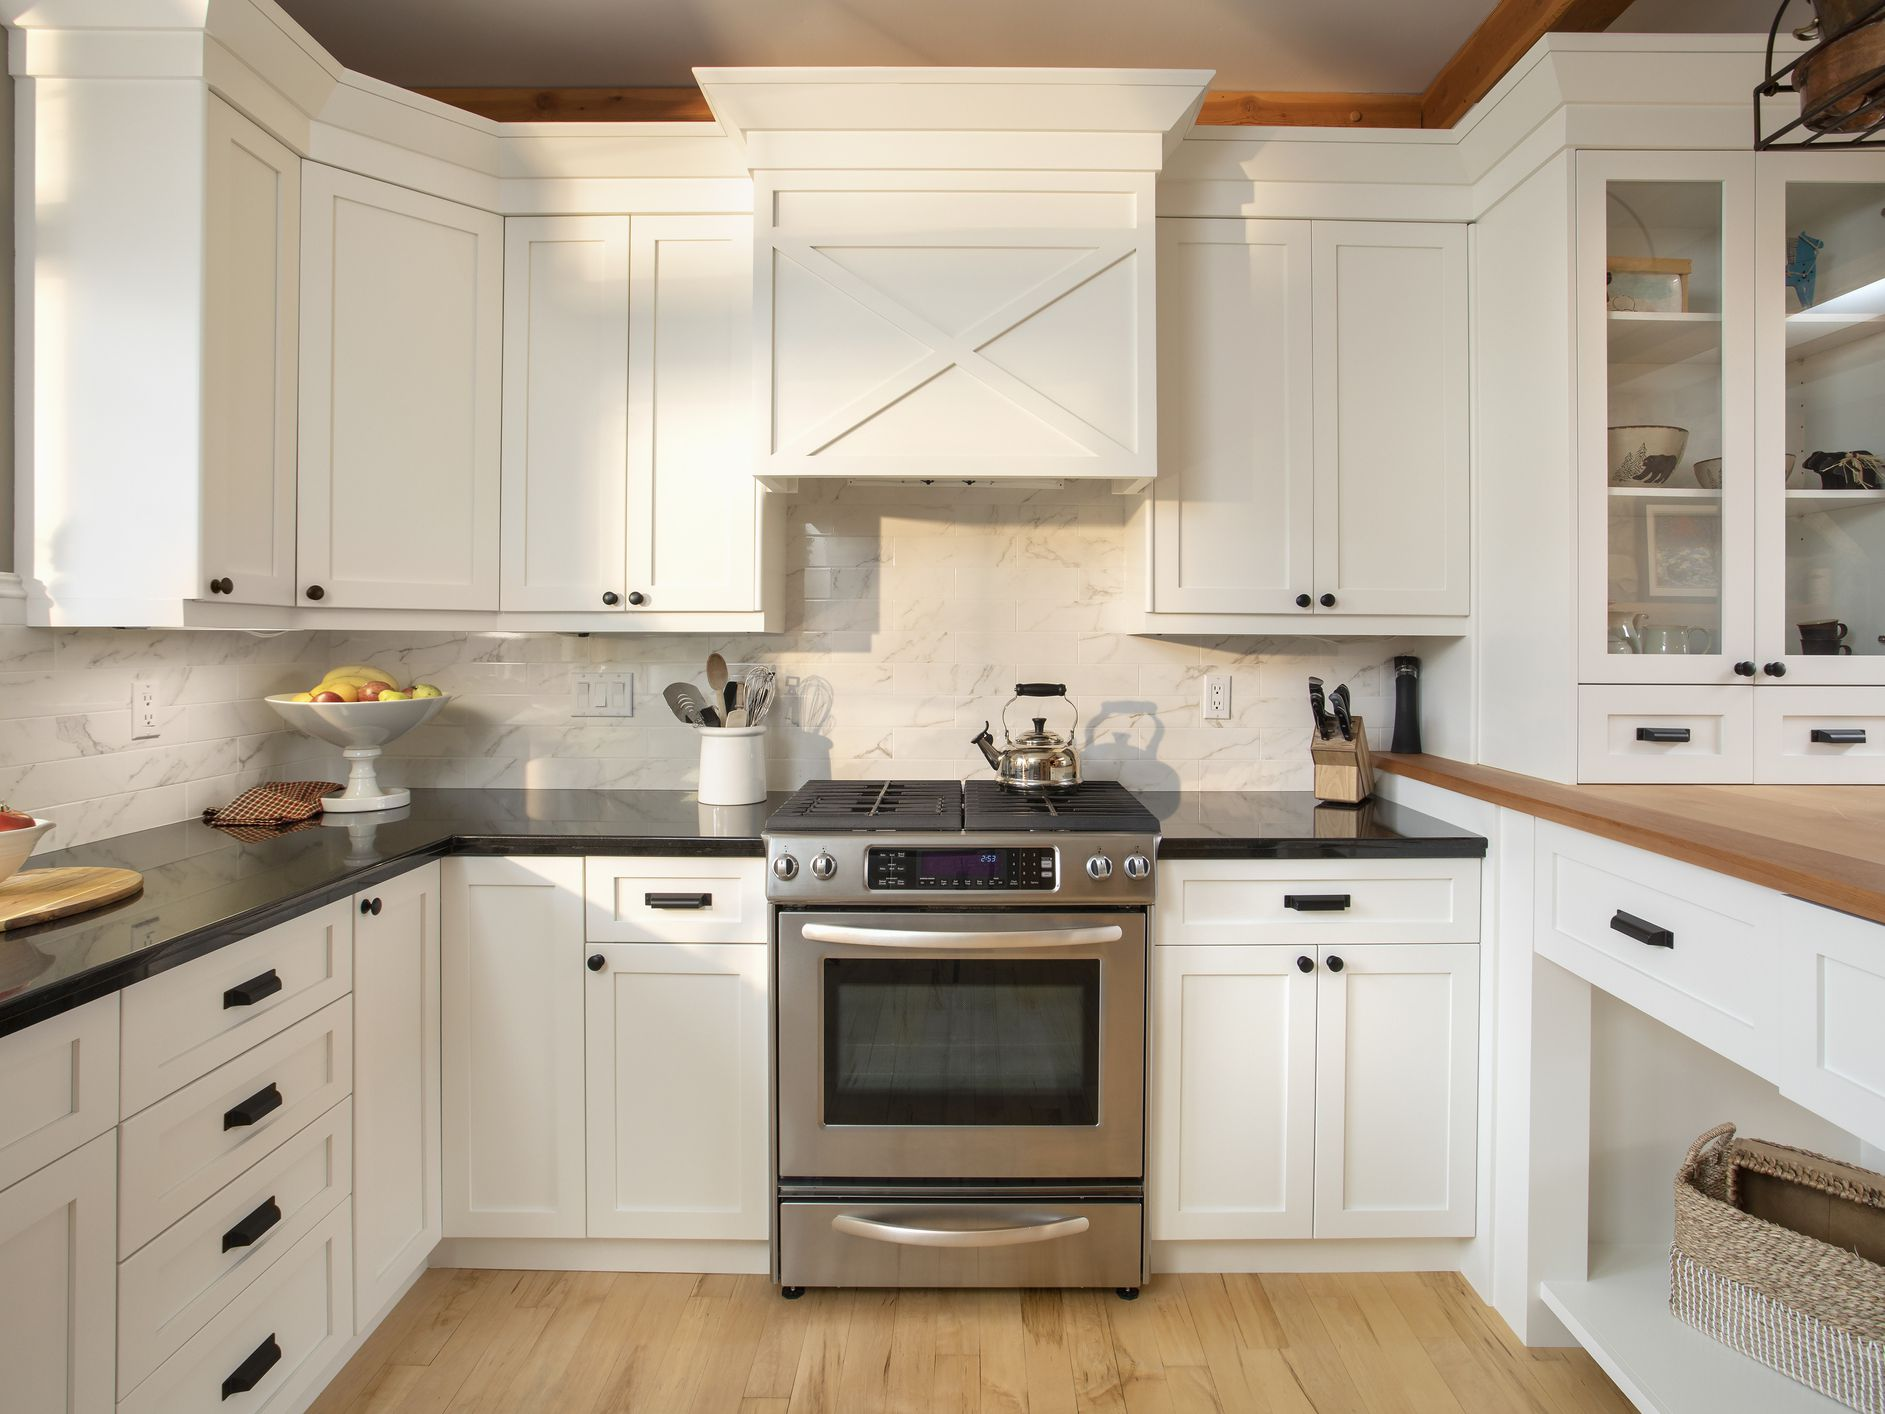 Display Model Kitchen Cabinets For Sale How to Buy Used Kitchen Cabinets and Save Money